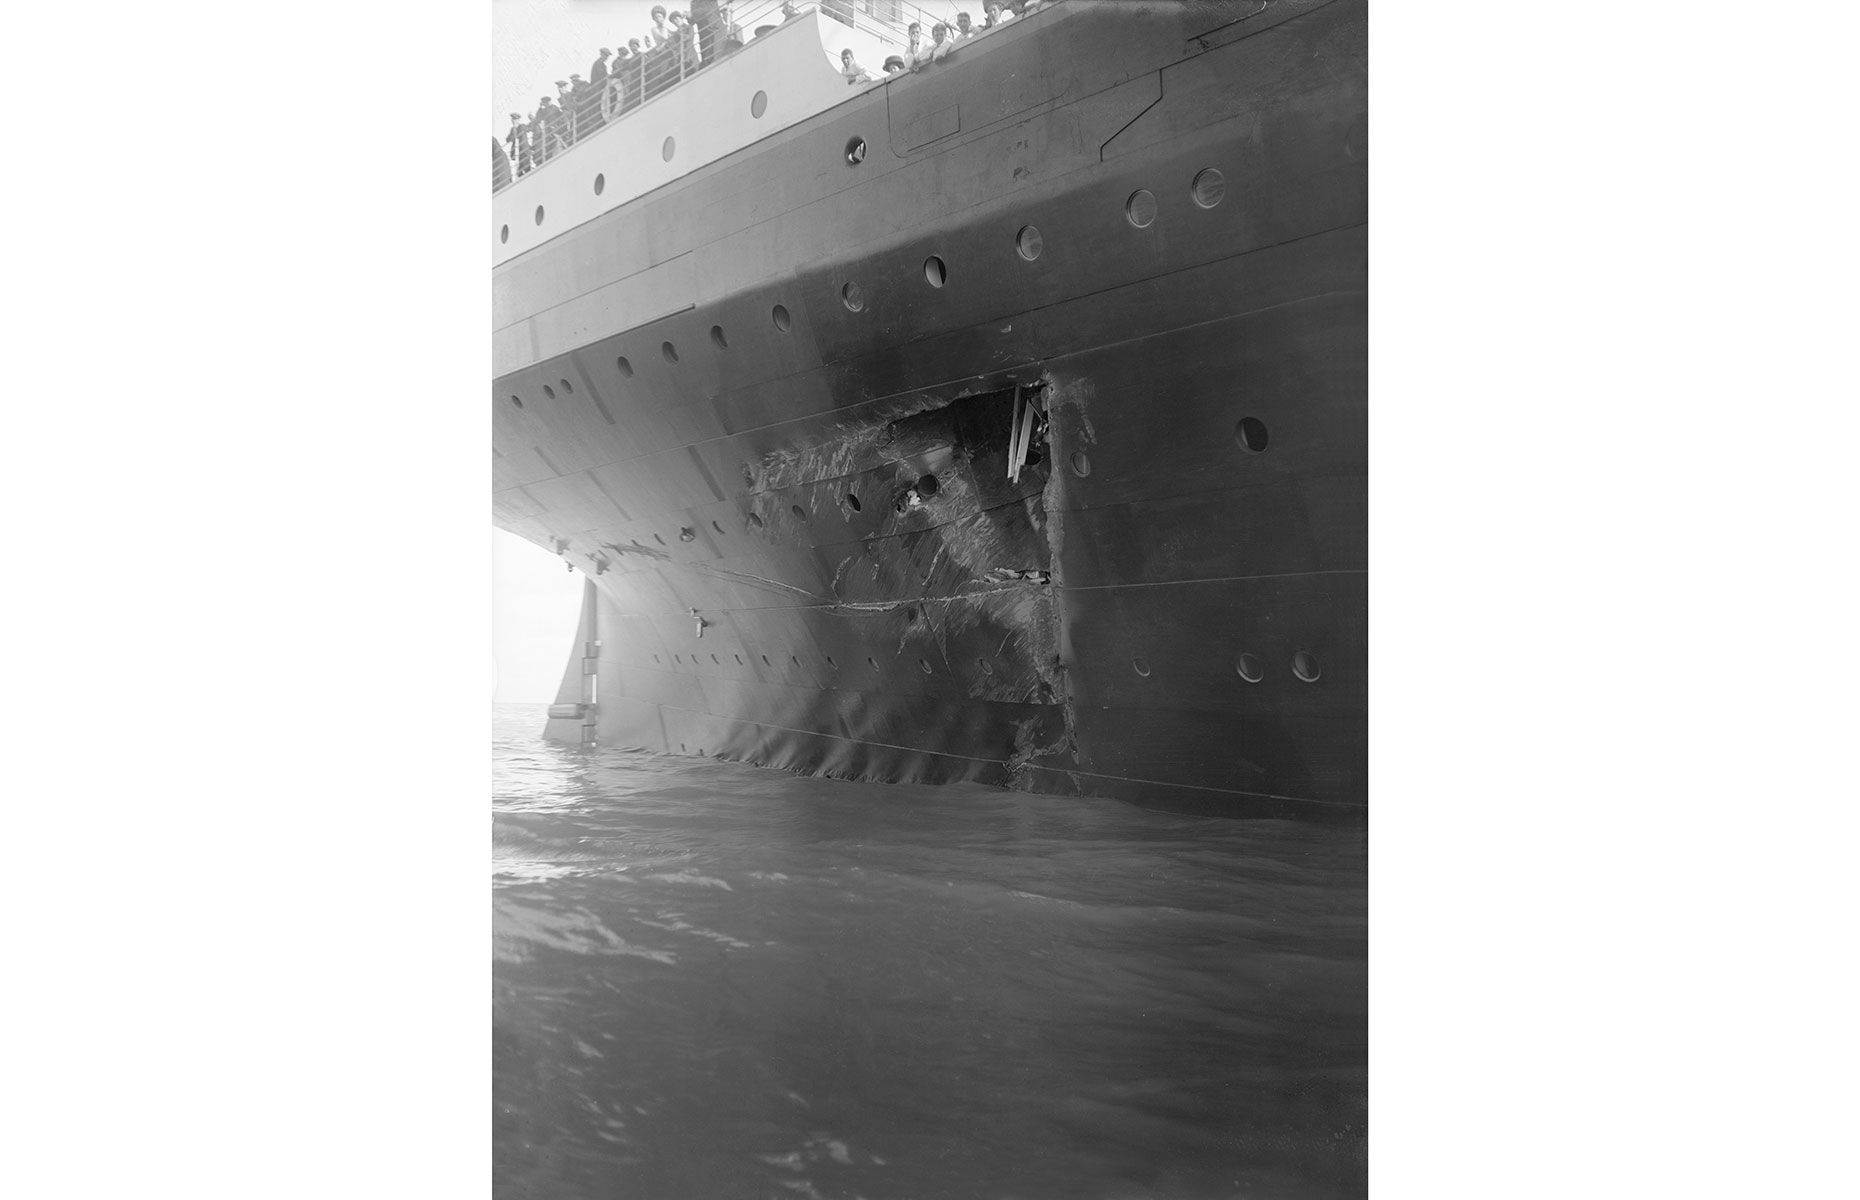 The damage to the RMS Olympic when it collided with HMS Hawke in 1911 (Image: Kirk and Sons of Cowes/Heritage Images/Getty Images)